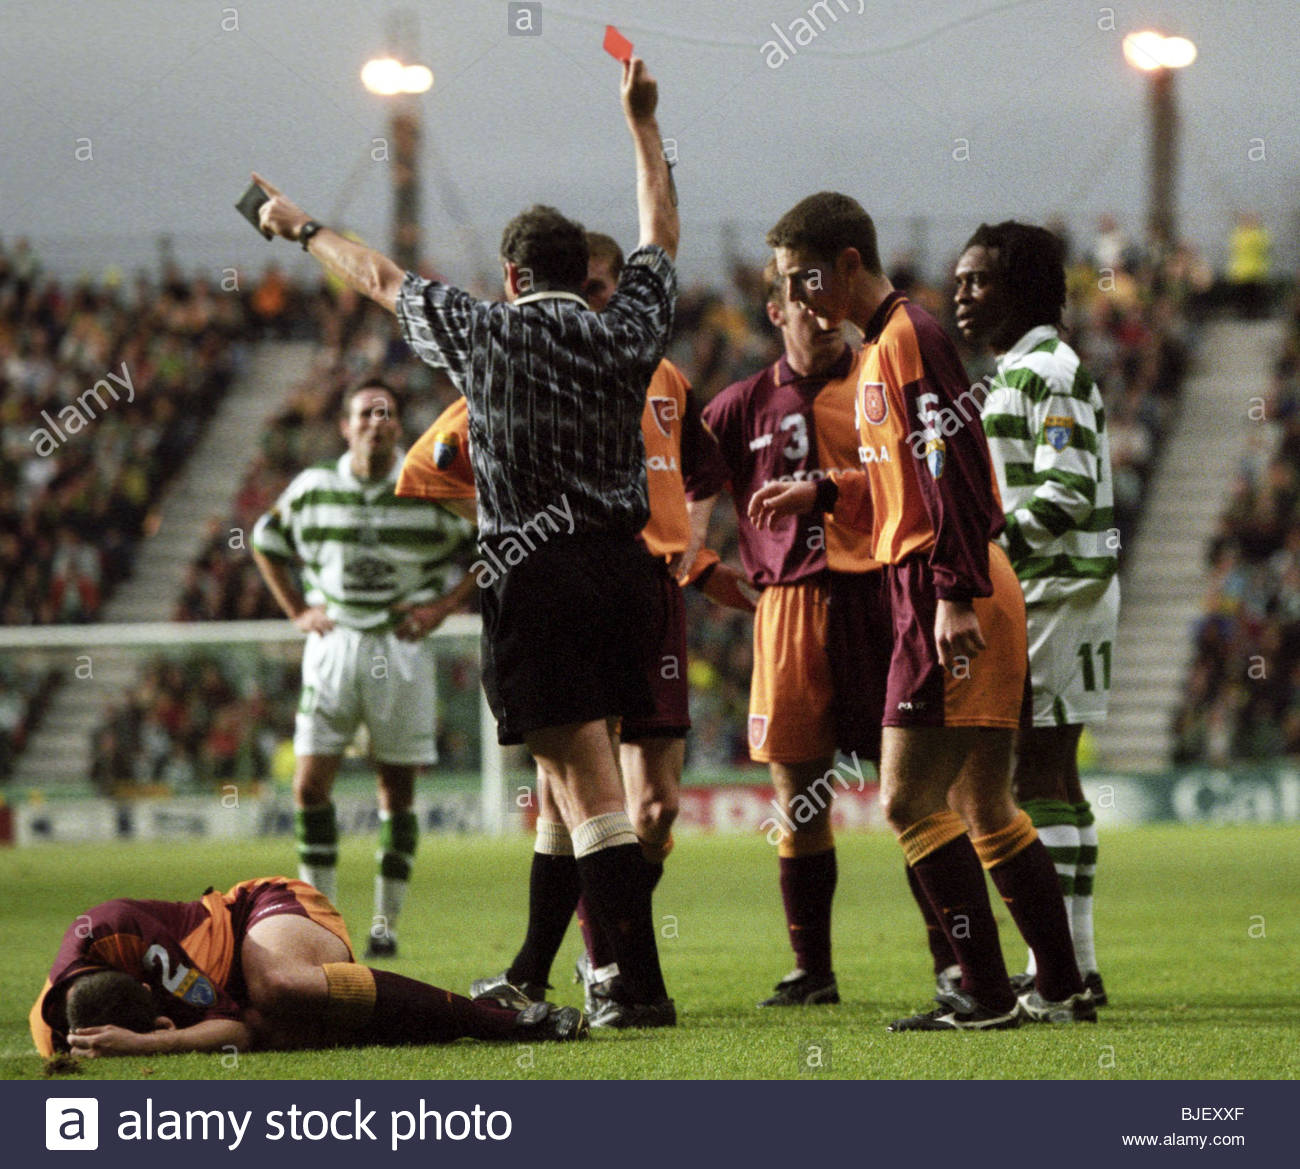 15/11/97 BELL'S PREMIER DIVISION CELTIC v MOTHERWELL (0-2) CELTIC PARK - GLASGOW Referee Willie Young issues - Stock Image